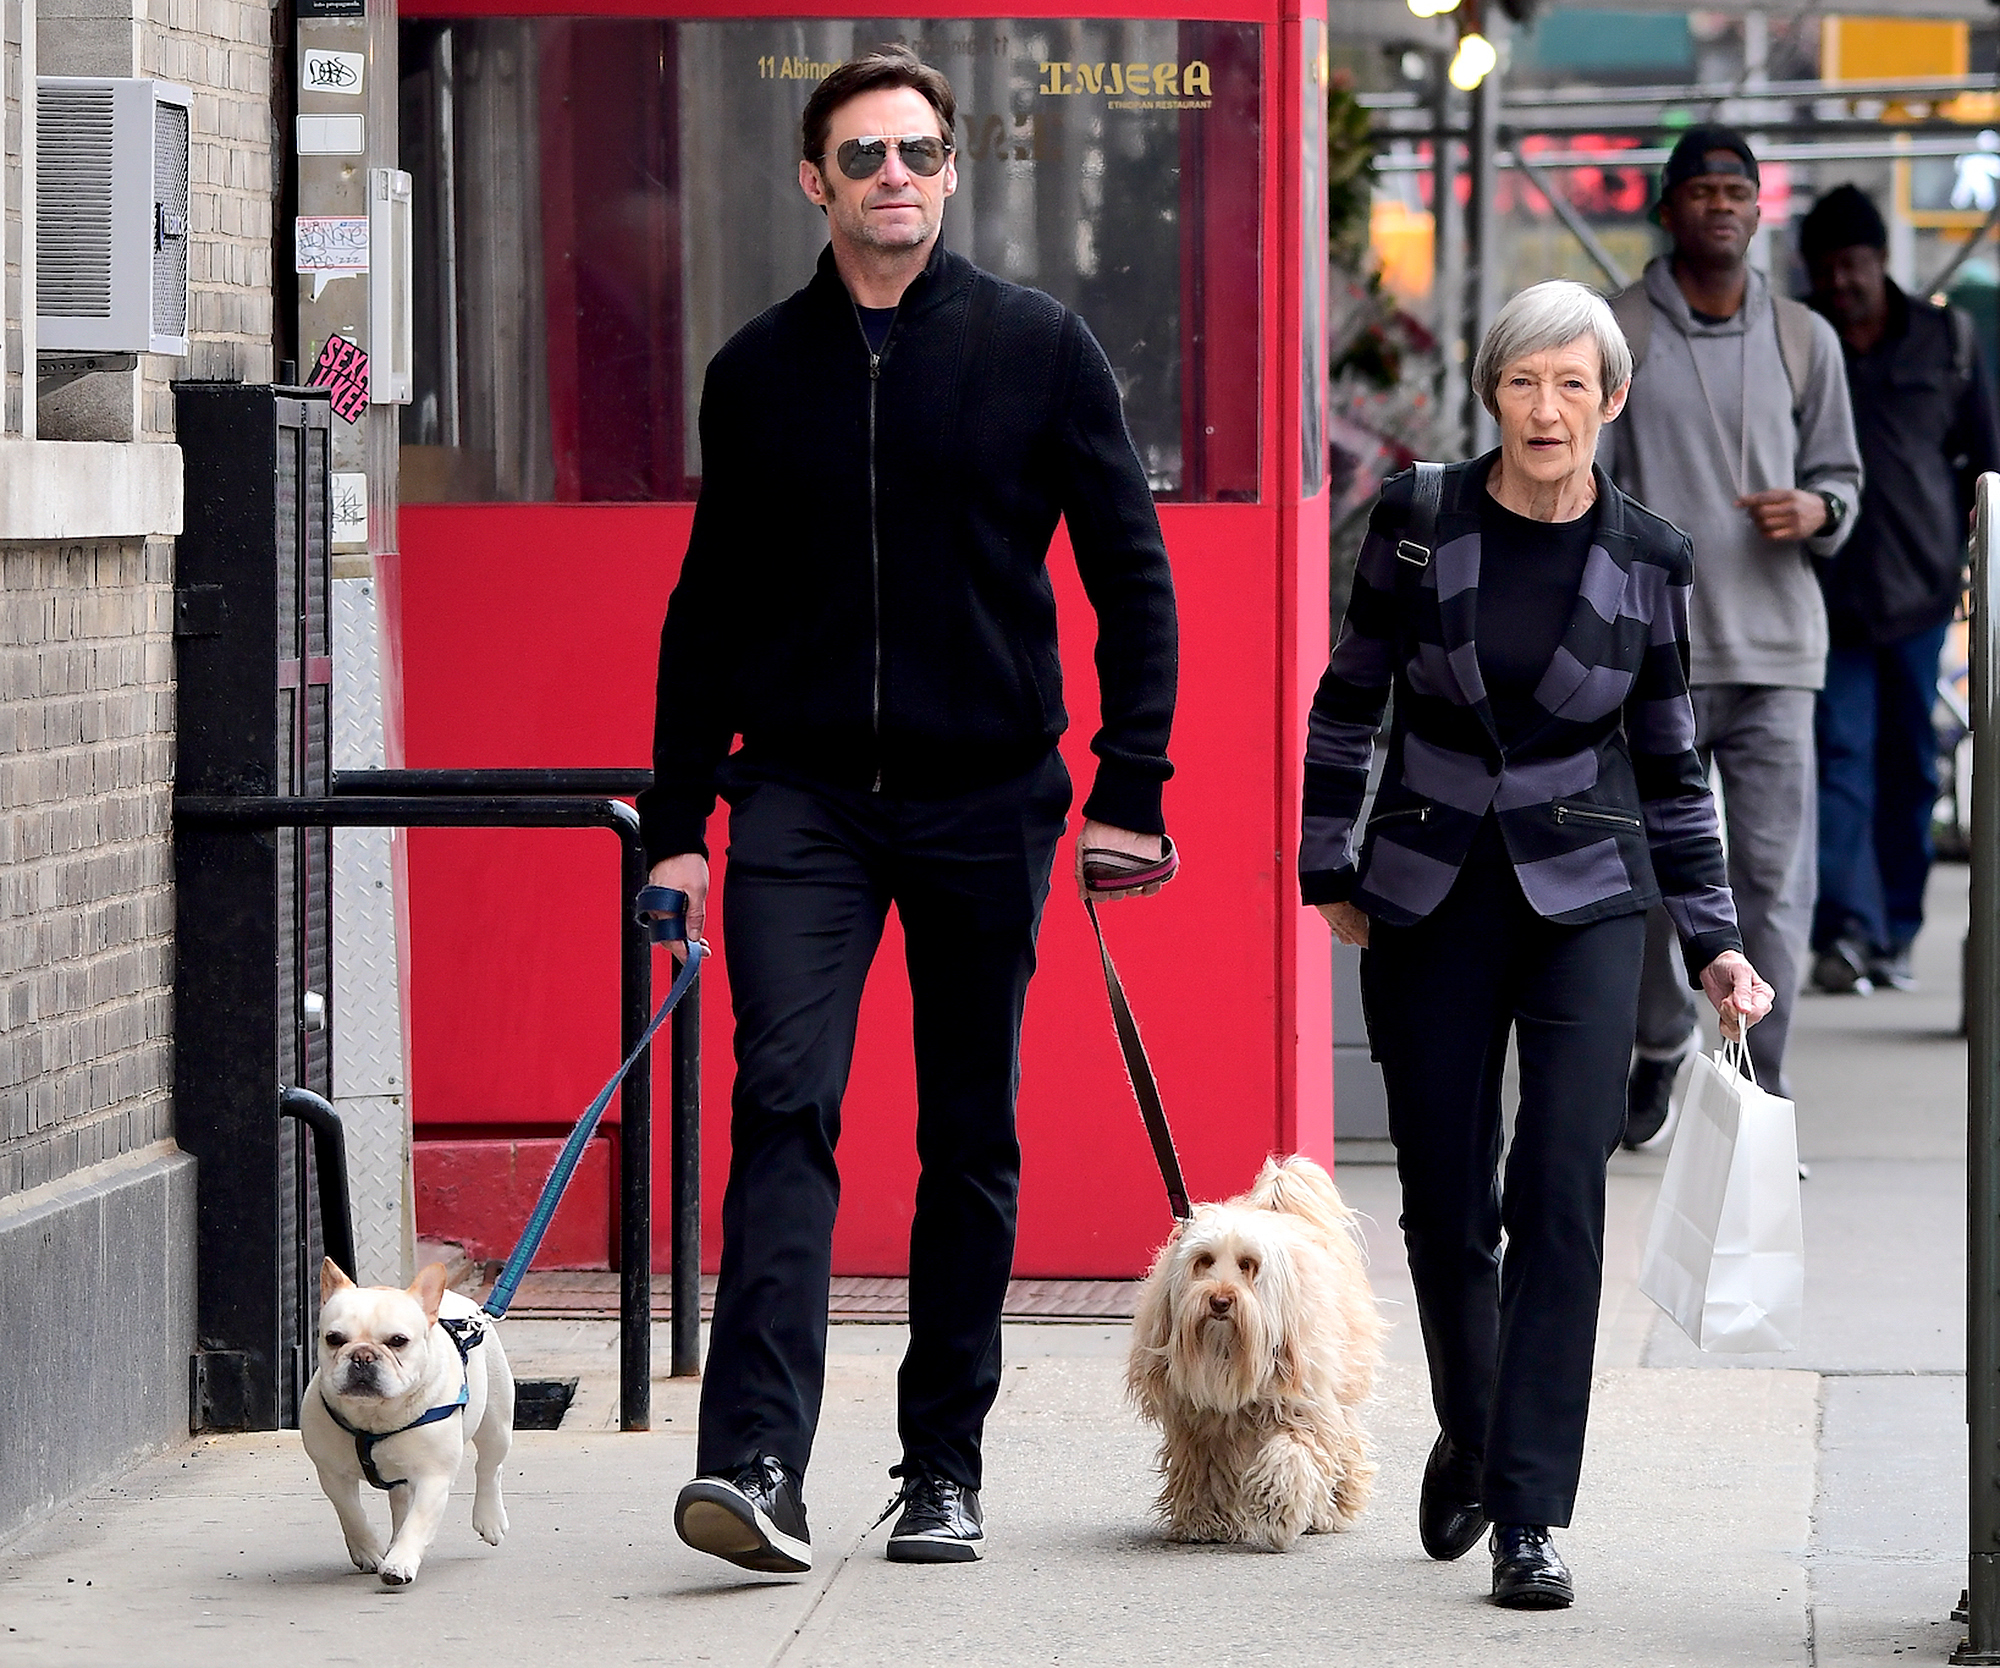 EXCLUSIVE: Hugh Jackman Enjoys Sunny Stroll and Spends Quality time with his Mom and 2 Dogs